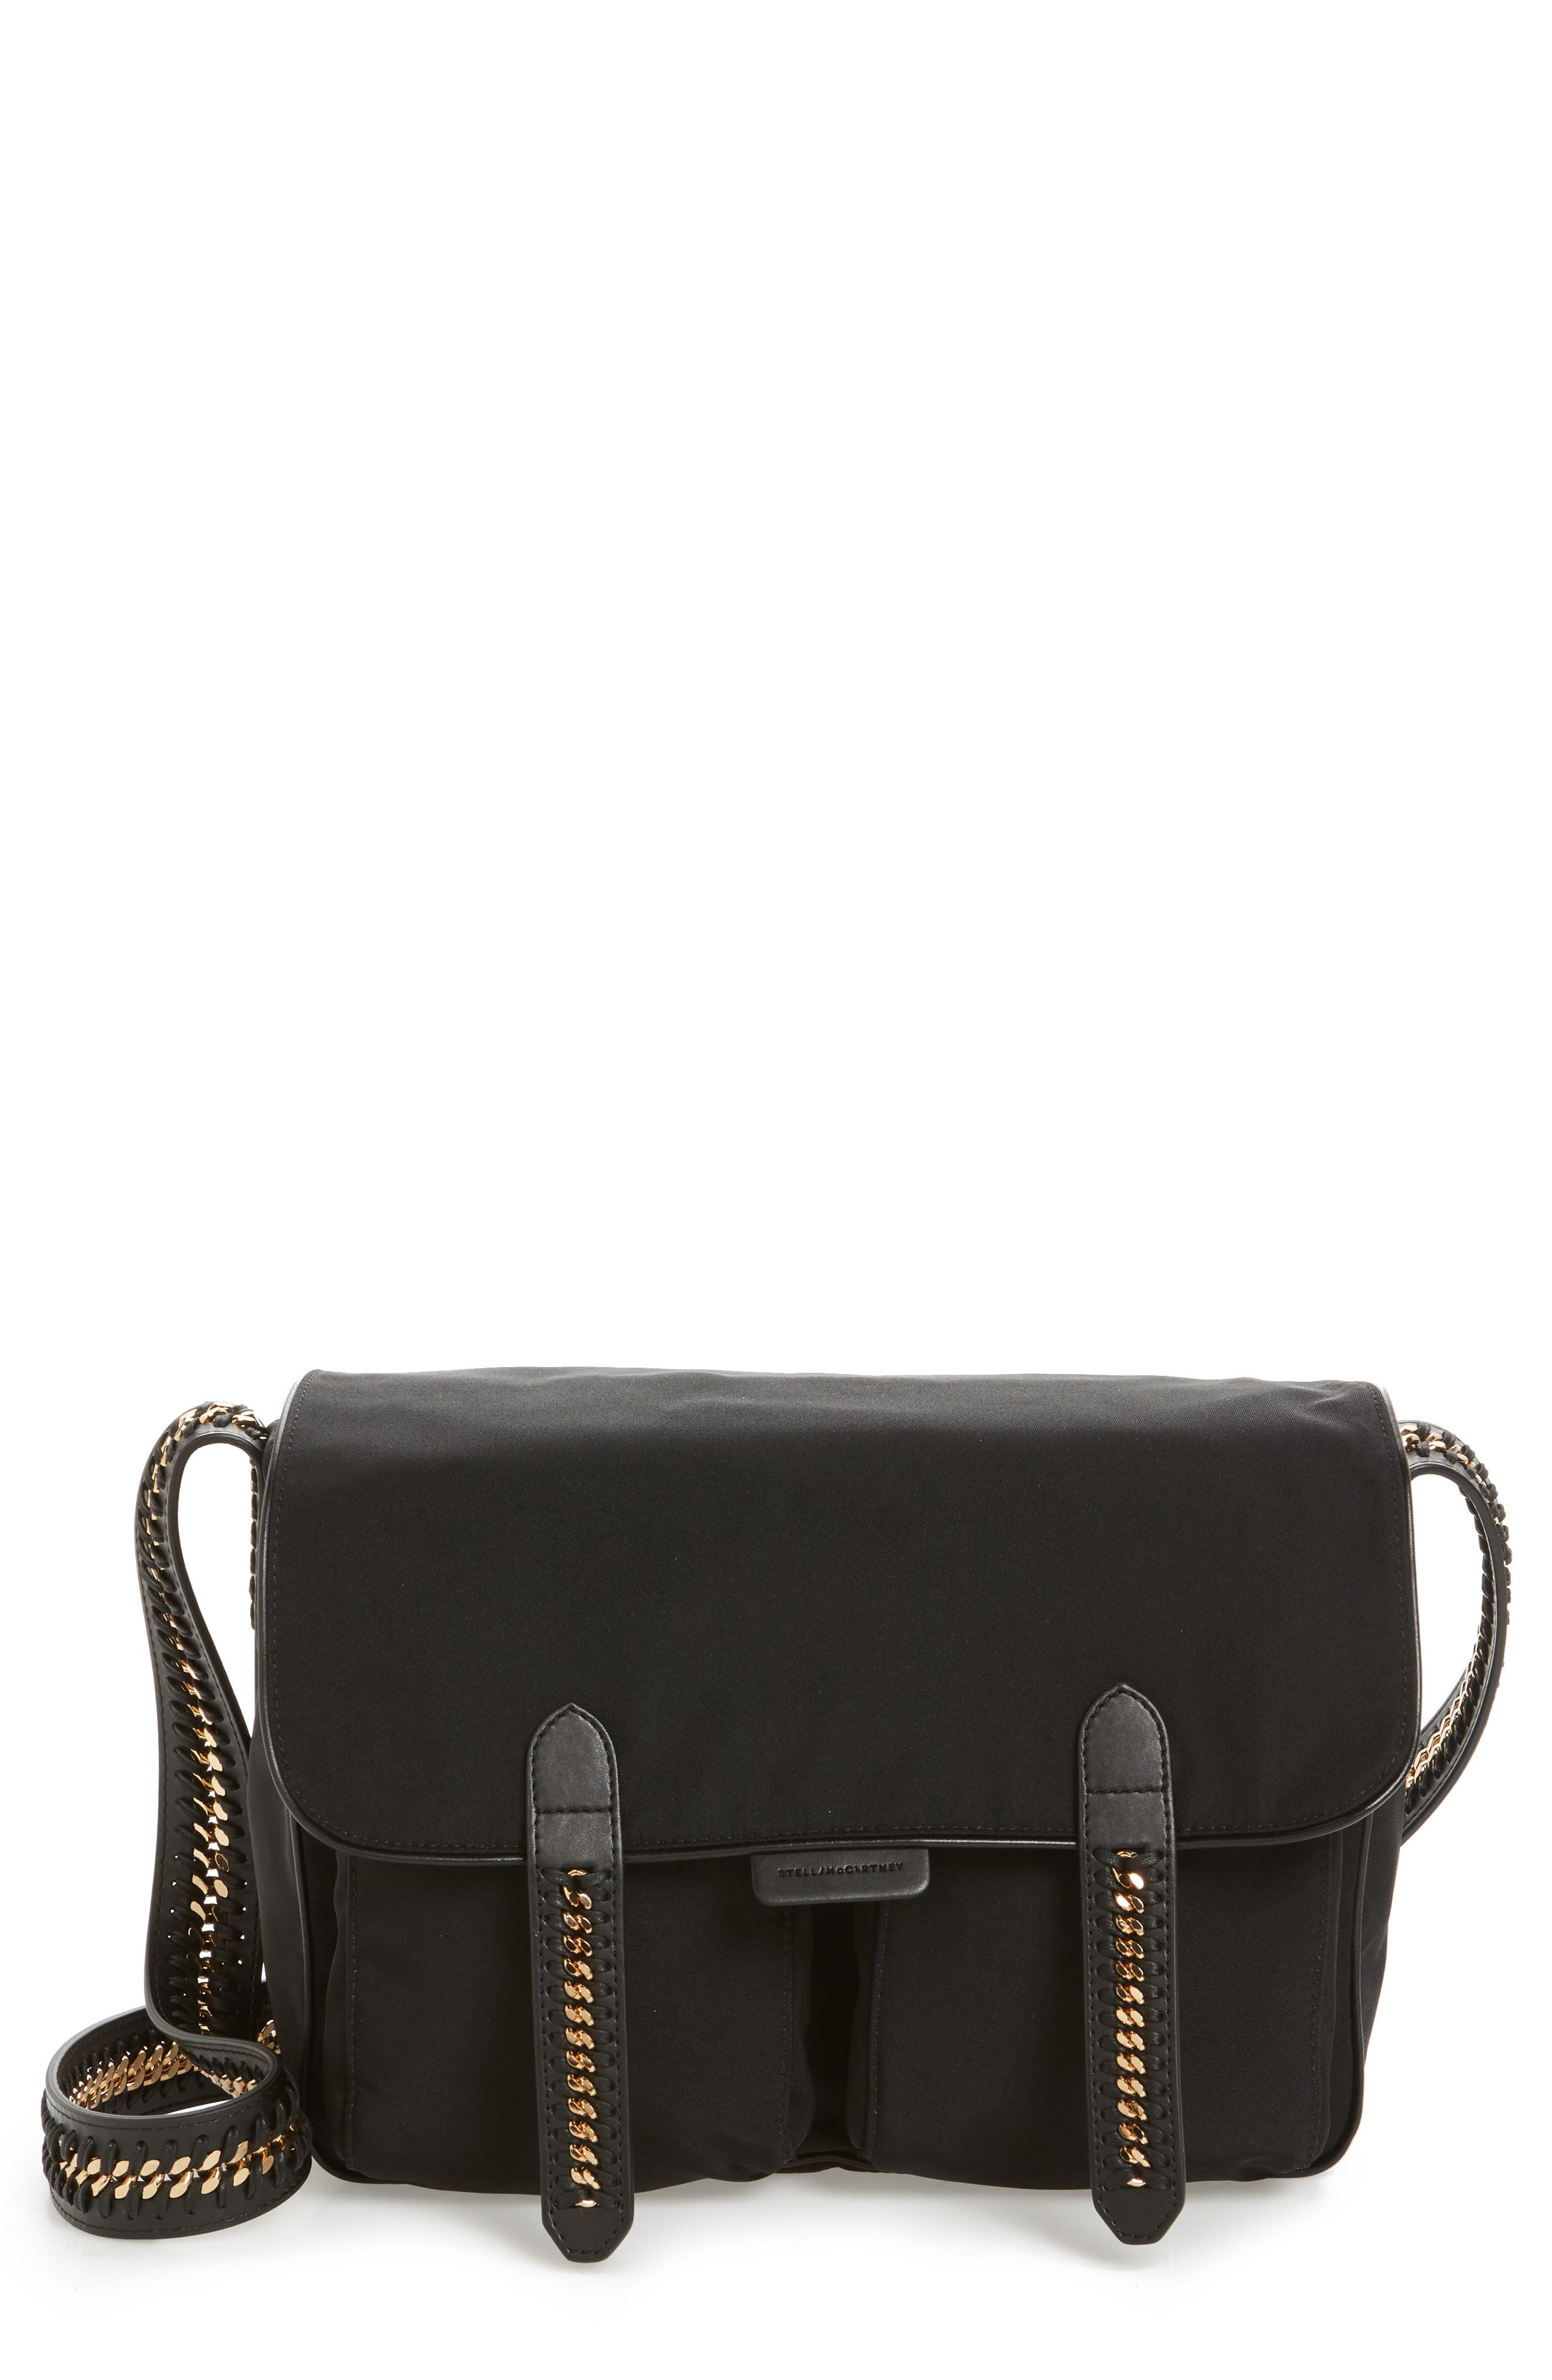 Alternate Image 1 Selected - Stella McCartney Falabella GO Messenger Bag